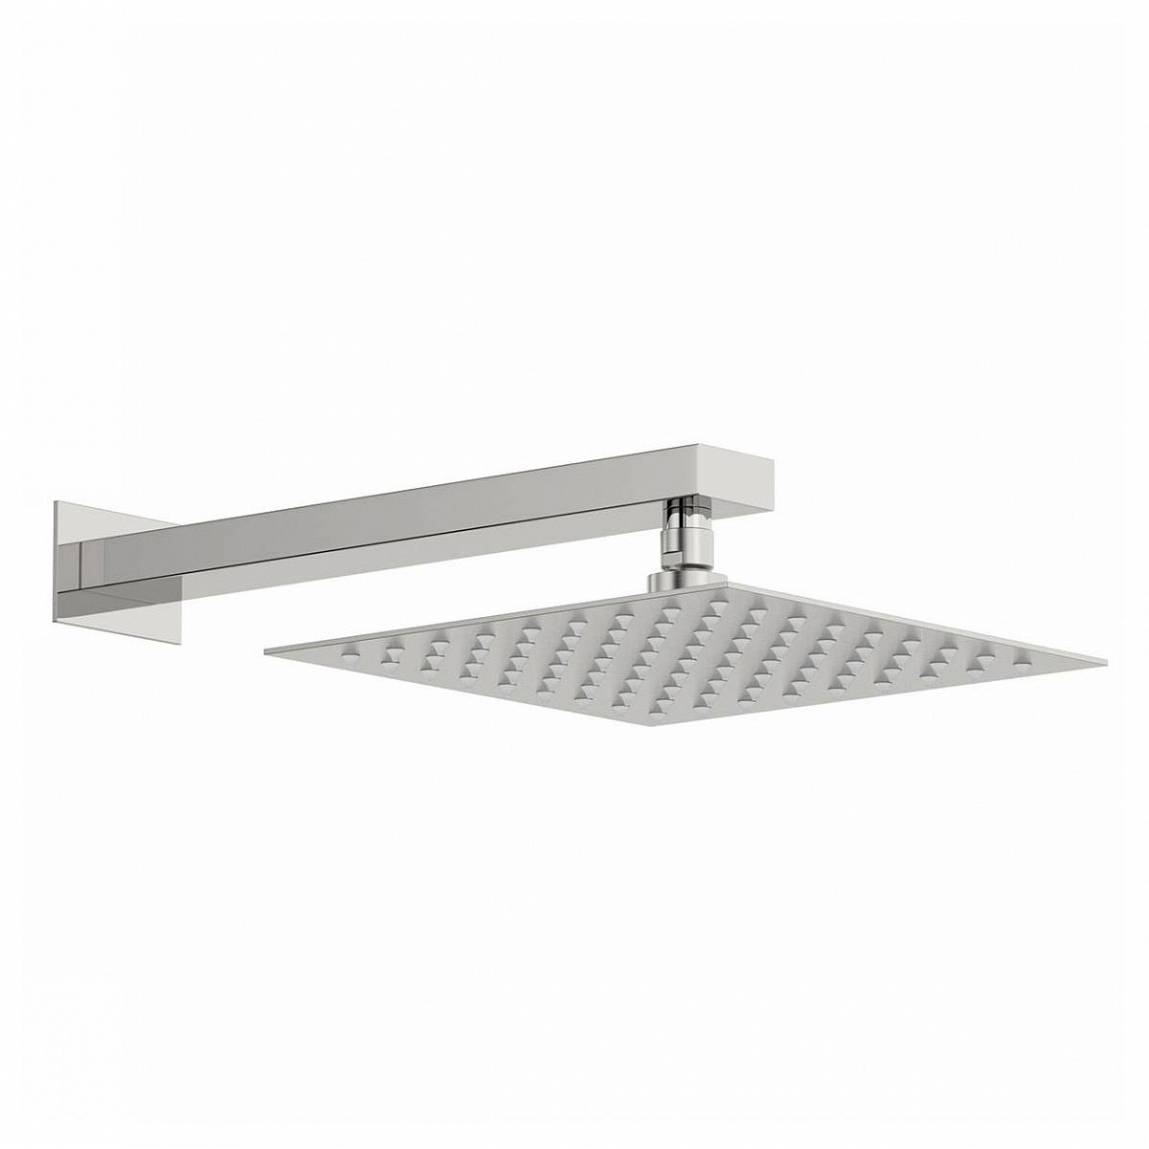 Image of Incus 250mm Shower Head & Rectangular Wall Arm